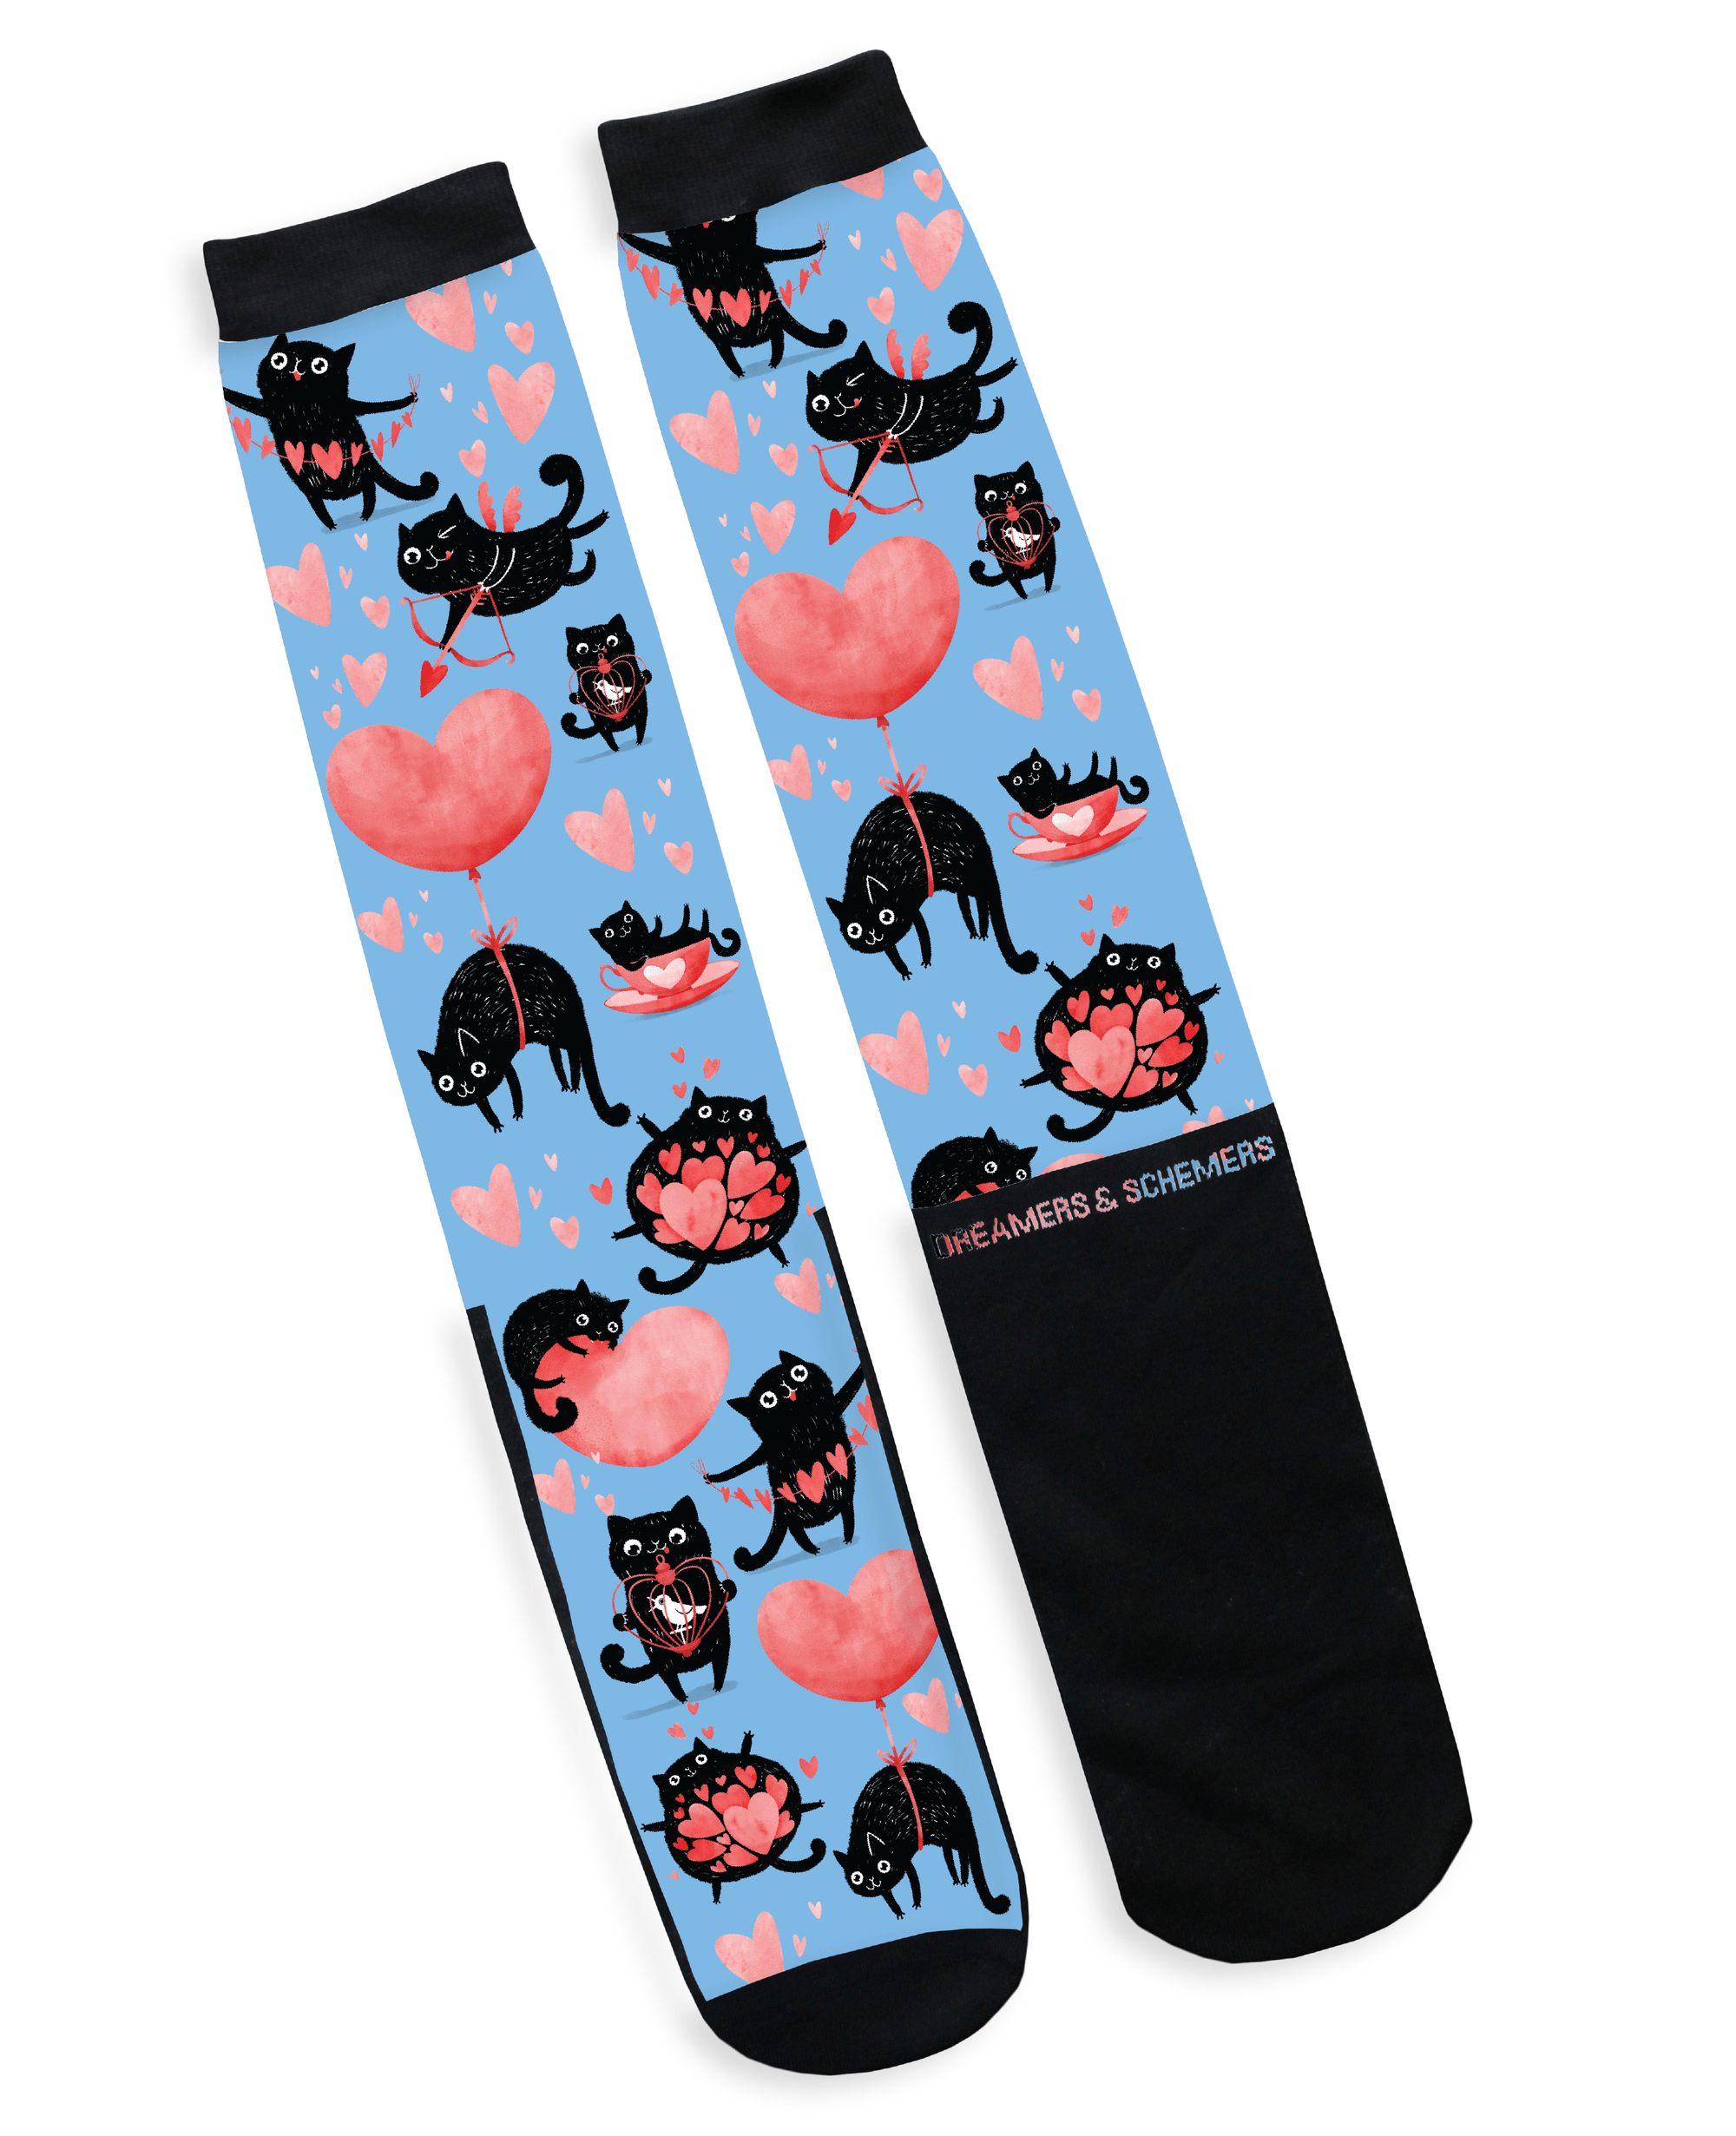 dreamers & schemers Limited Edition PURRR Socks equestrian boot socks boot socks thin socks riding socks pattern socks tall socks funny socks knee high socks horse socks horse show socks